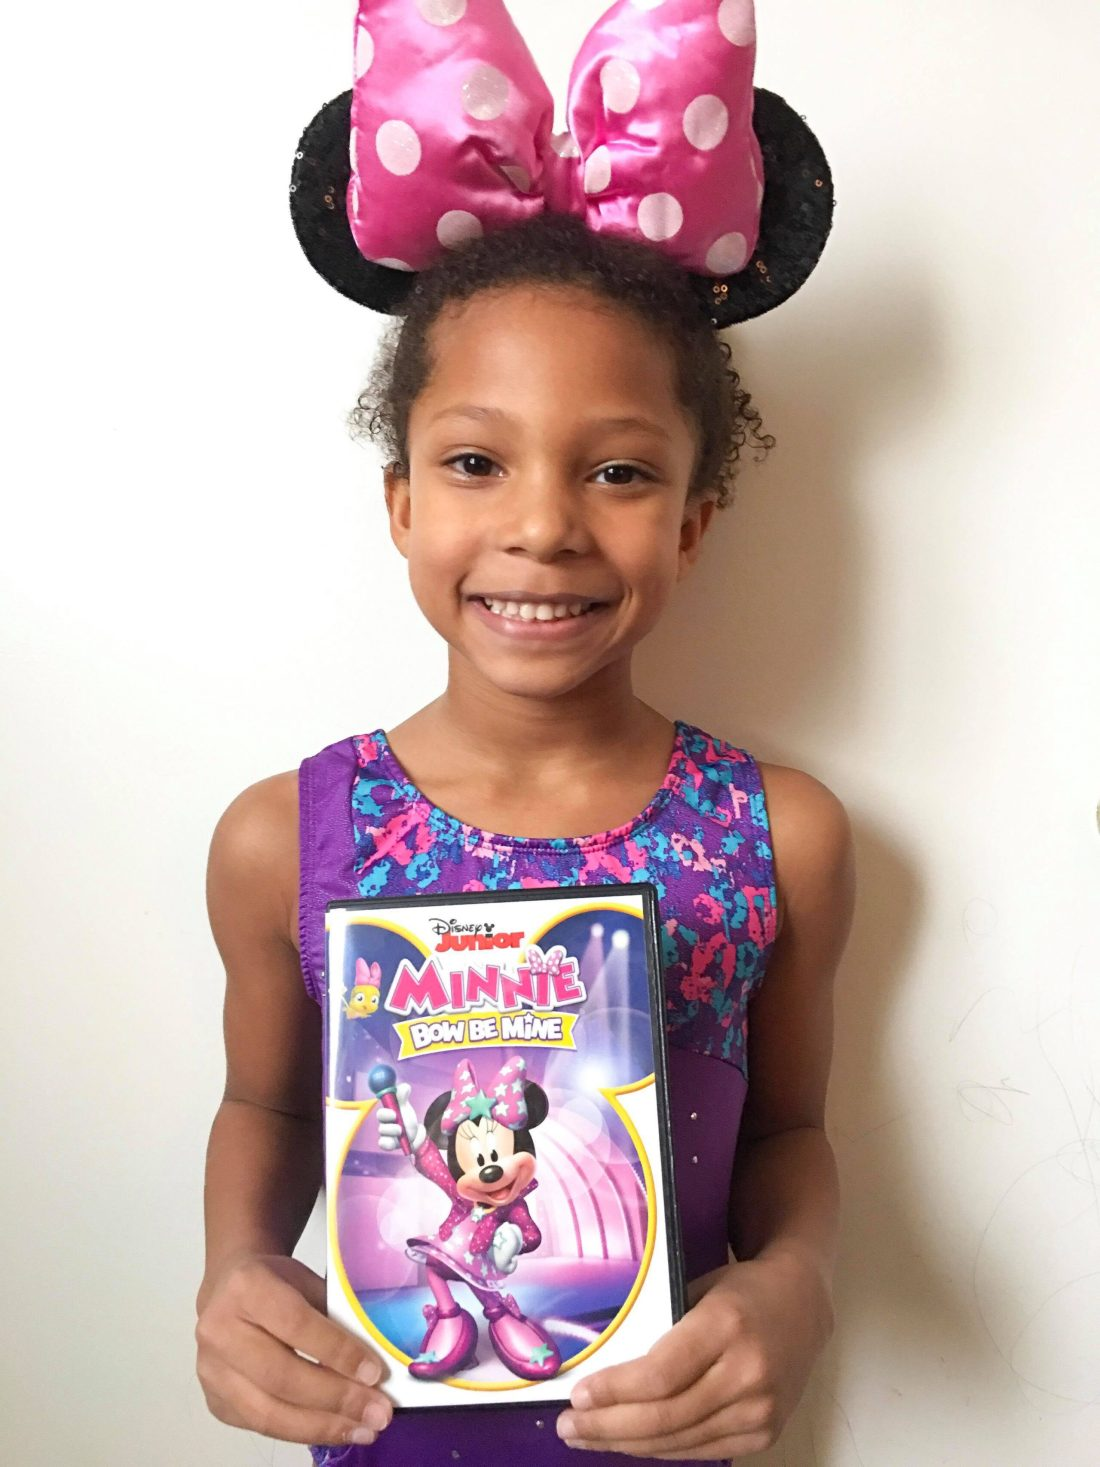 Esuun Holding DIsney Jr. Minnie: Bow Be Mine DVD. Minnie and Daisy are tackling new adventures in their newest Disney Jr. DVD Minnie: Bow Be Mine. Filled with 12 fun-filled episodes plus bonus content.